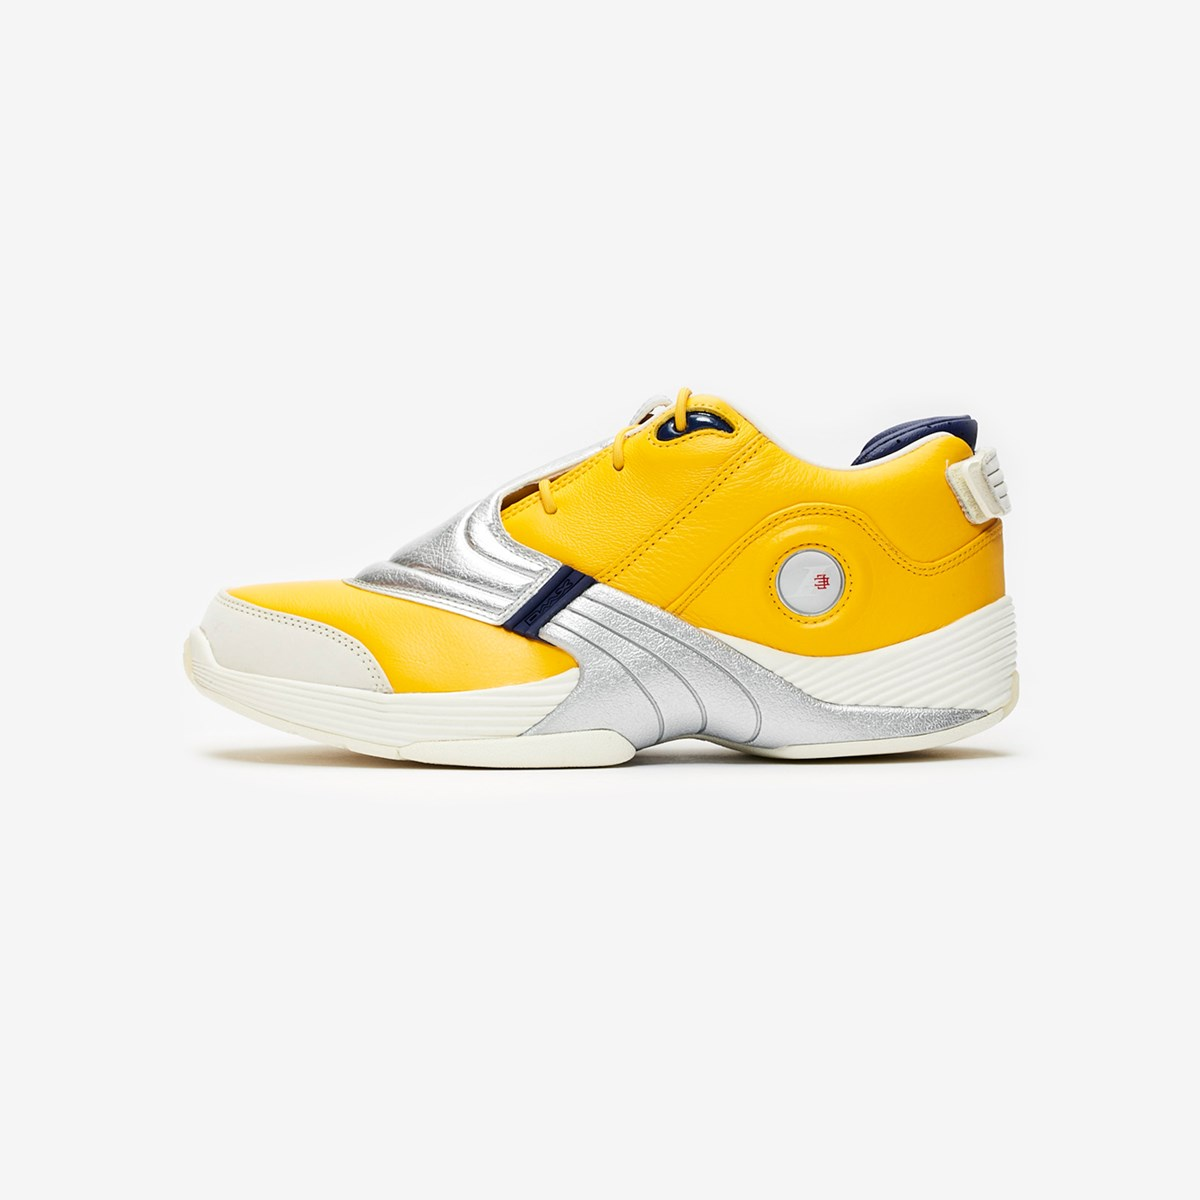 Reebok Answer V EH0408 Mens Yellow Leather High Top Athletic Basketball Shoes